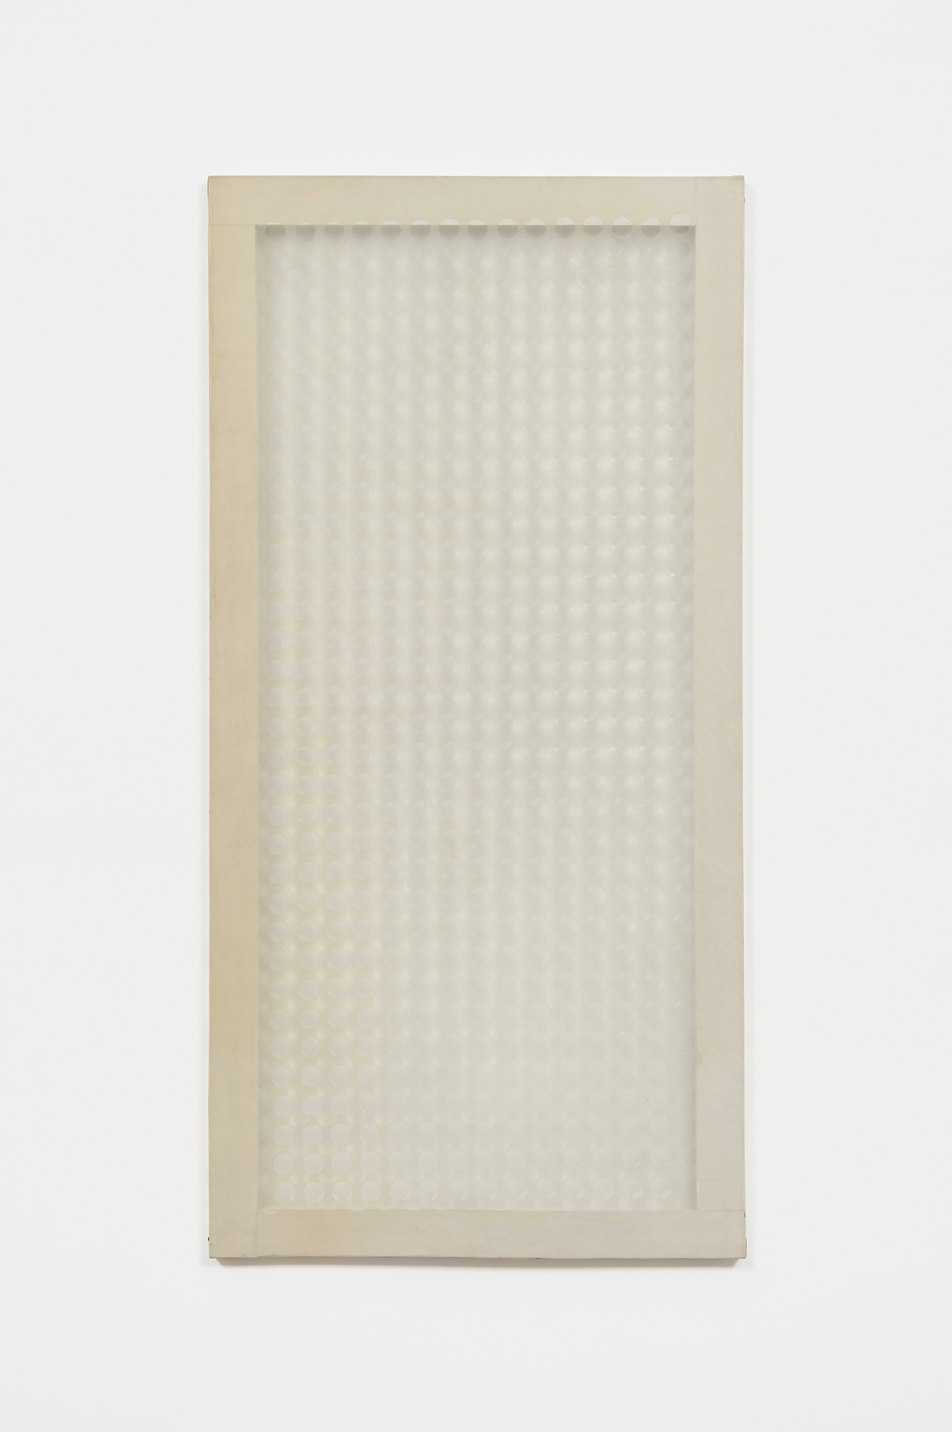 Dadamaino, <em>Volume a Moduli Sfalsati (Volumes of out of phase modules),</em> 1960, perforated plastic sheets mounted on a wood frame, 120 × 60 cm - Mendes Wood DM